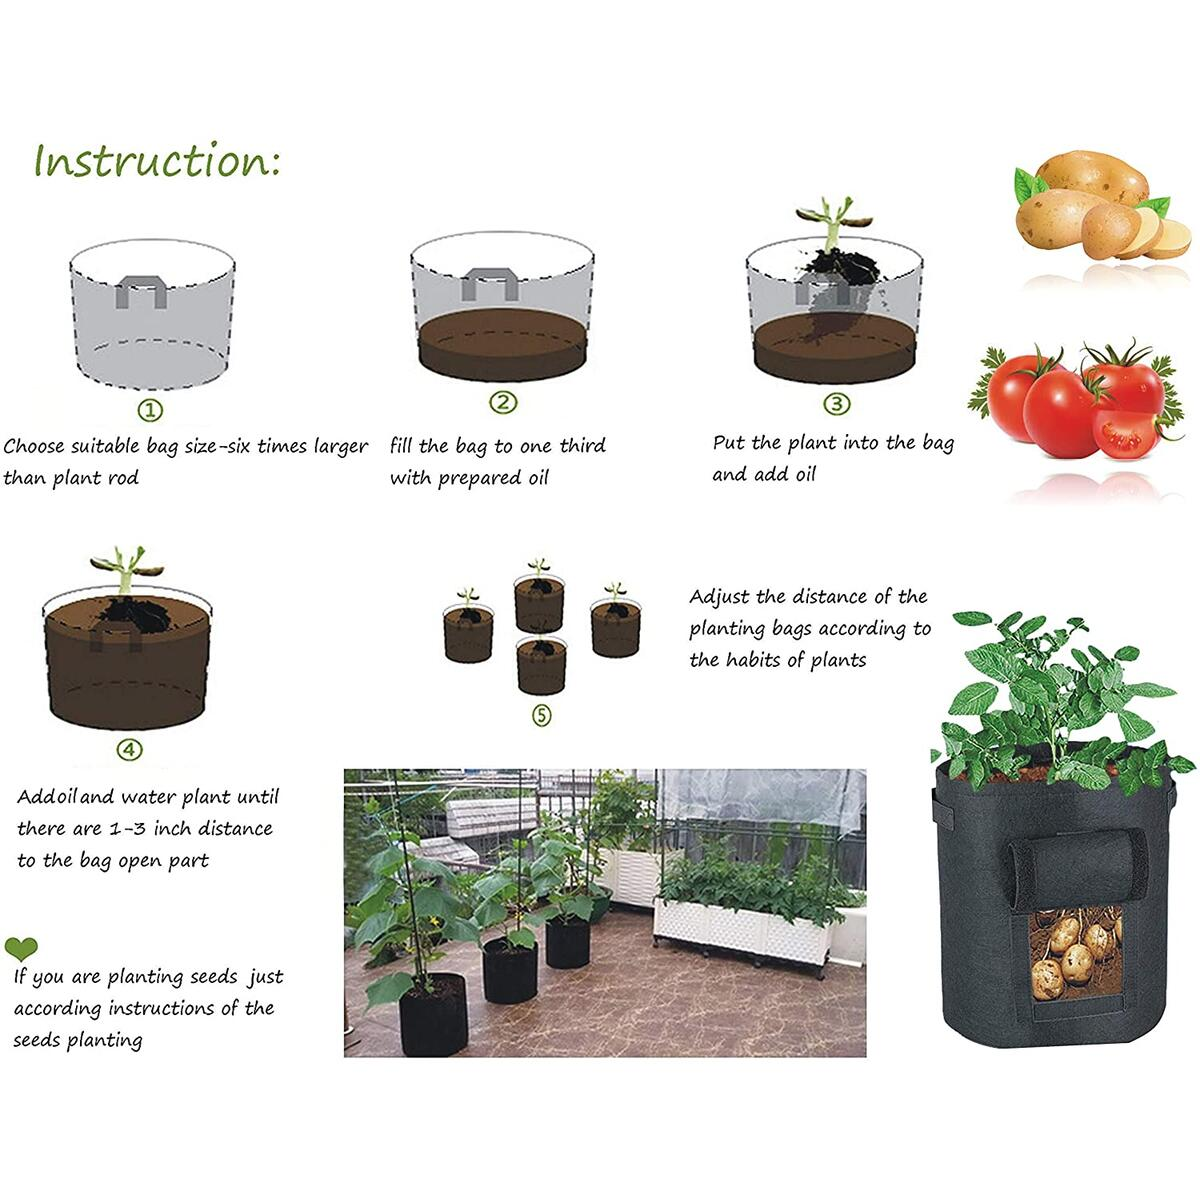 Plant Grow Bags, 3 Pack 5, 7 & 10 Gallons Garden Potato Planting Bags, Vegetables Planter, Non-Woven Aeration Fabric Pot Growing Bags with Handle and Access Flap with a Pair of Gardening Genie Gloves